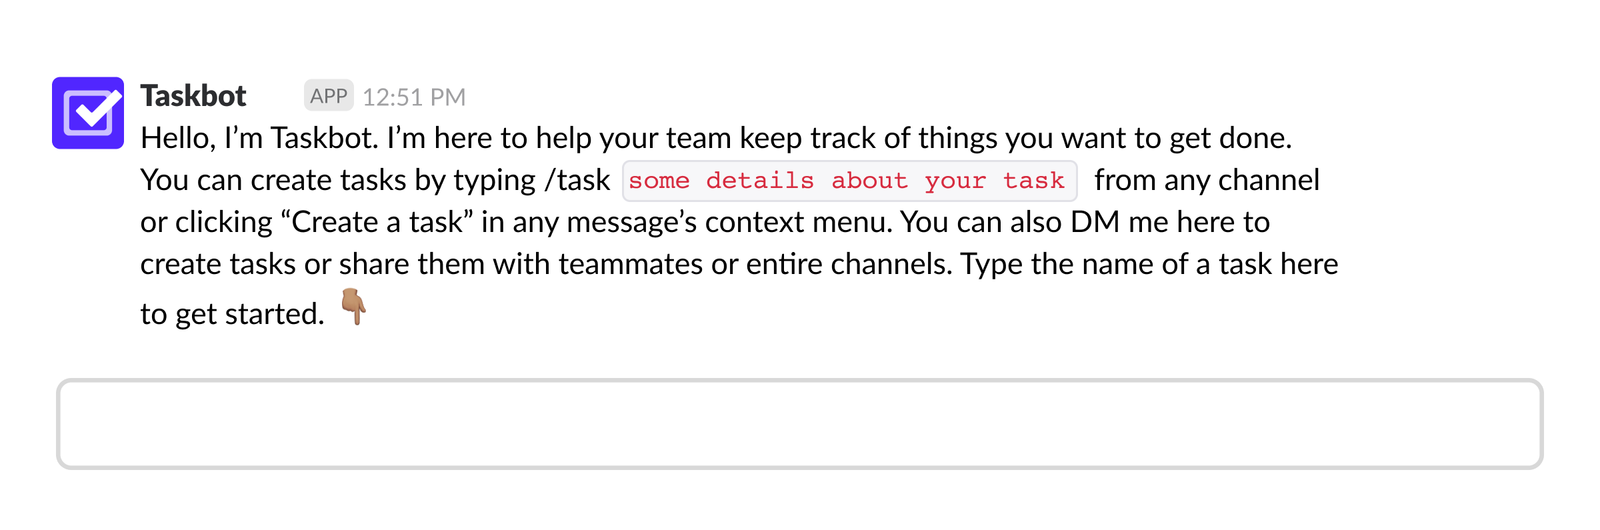 DM from taskbot with field prompting users to DM taskbot back